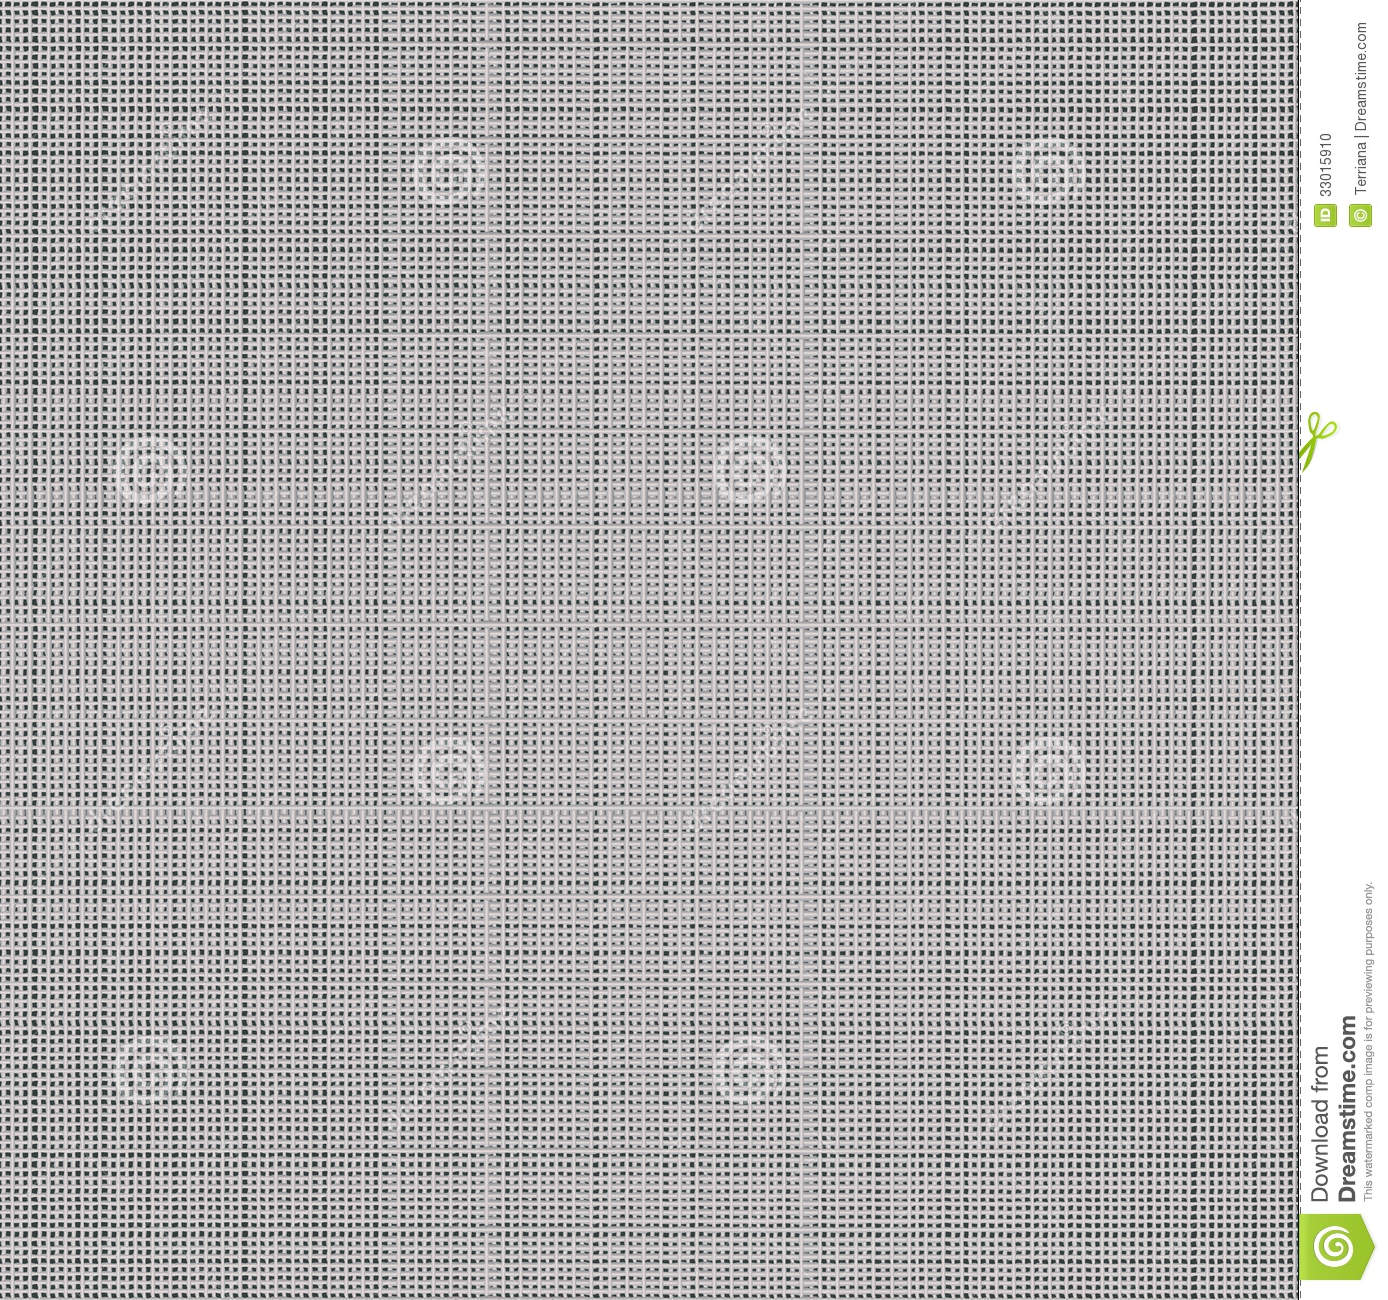 Fabric Seamless Texture Stock Illustration Image Of